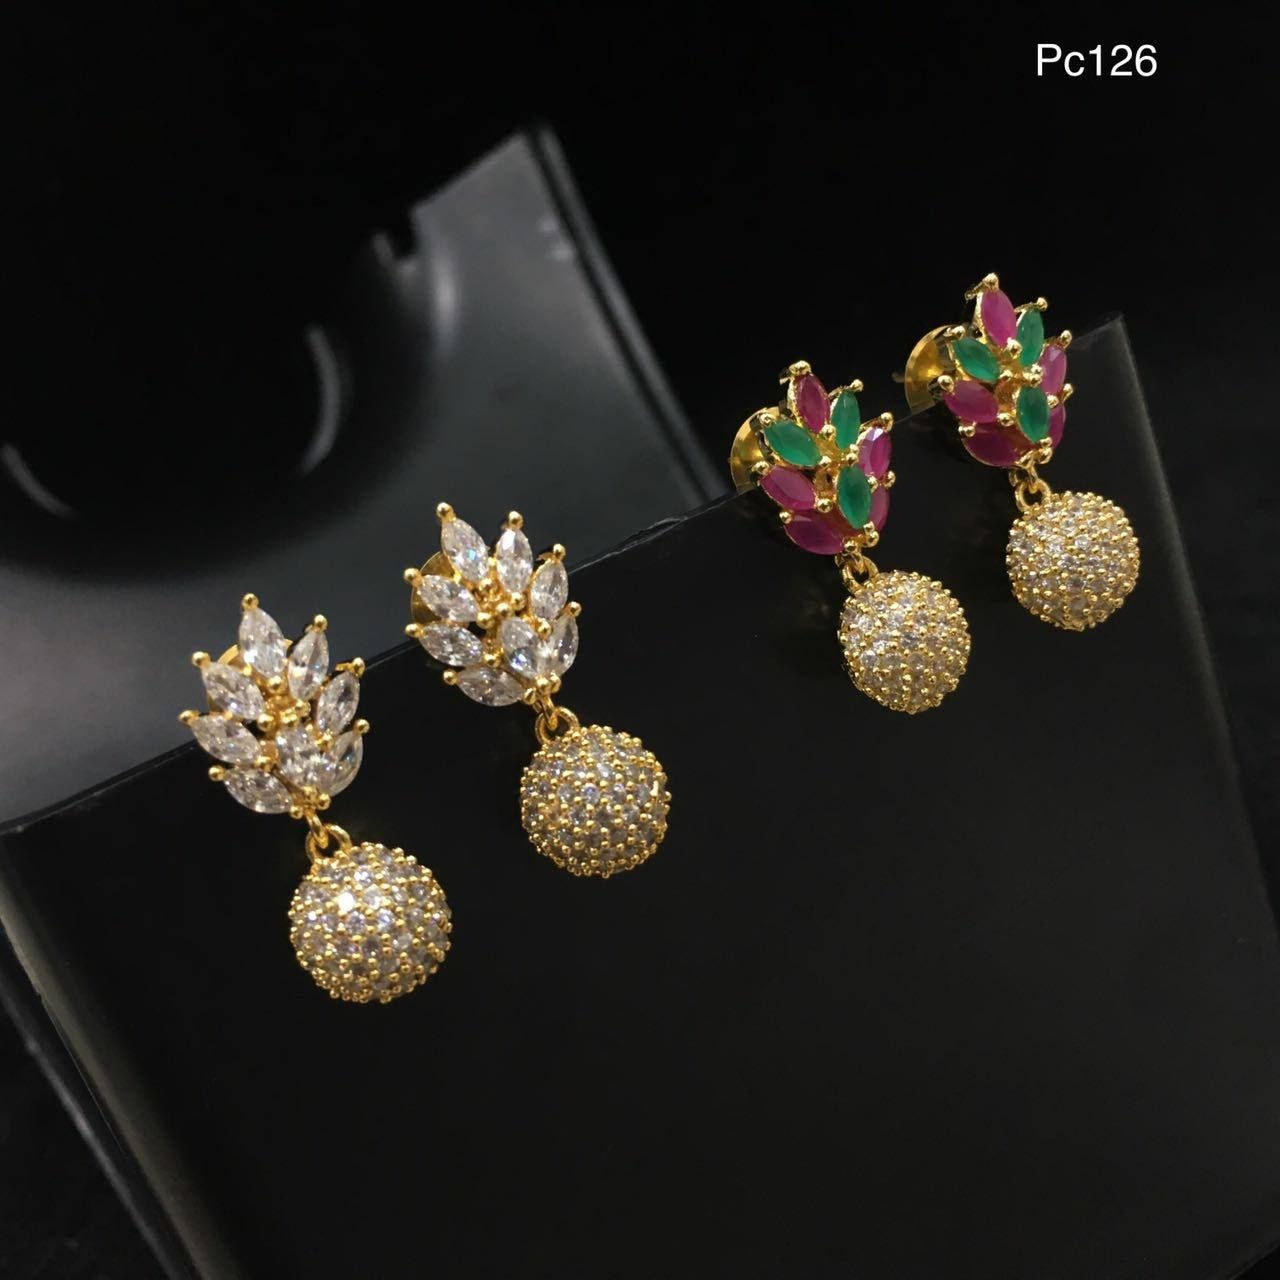 Beautiful ear studs with leaf design Ear studs studded with white